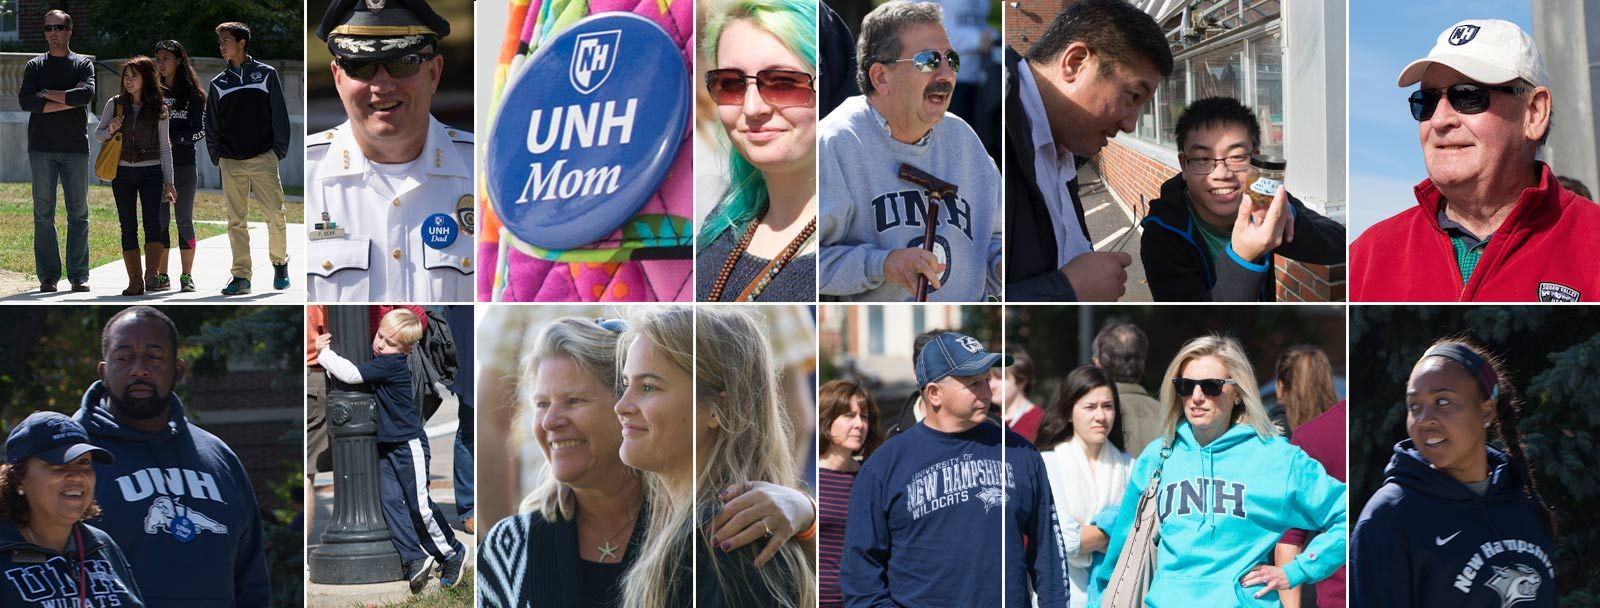 A montage of faces from UNH Family weekend.